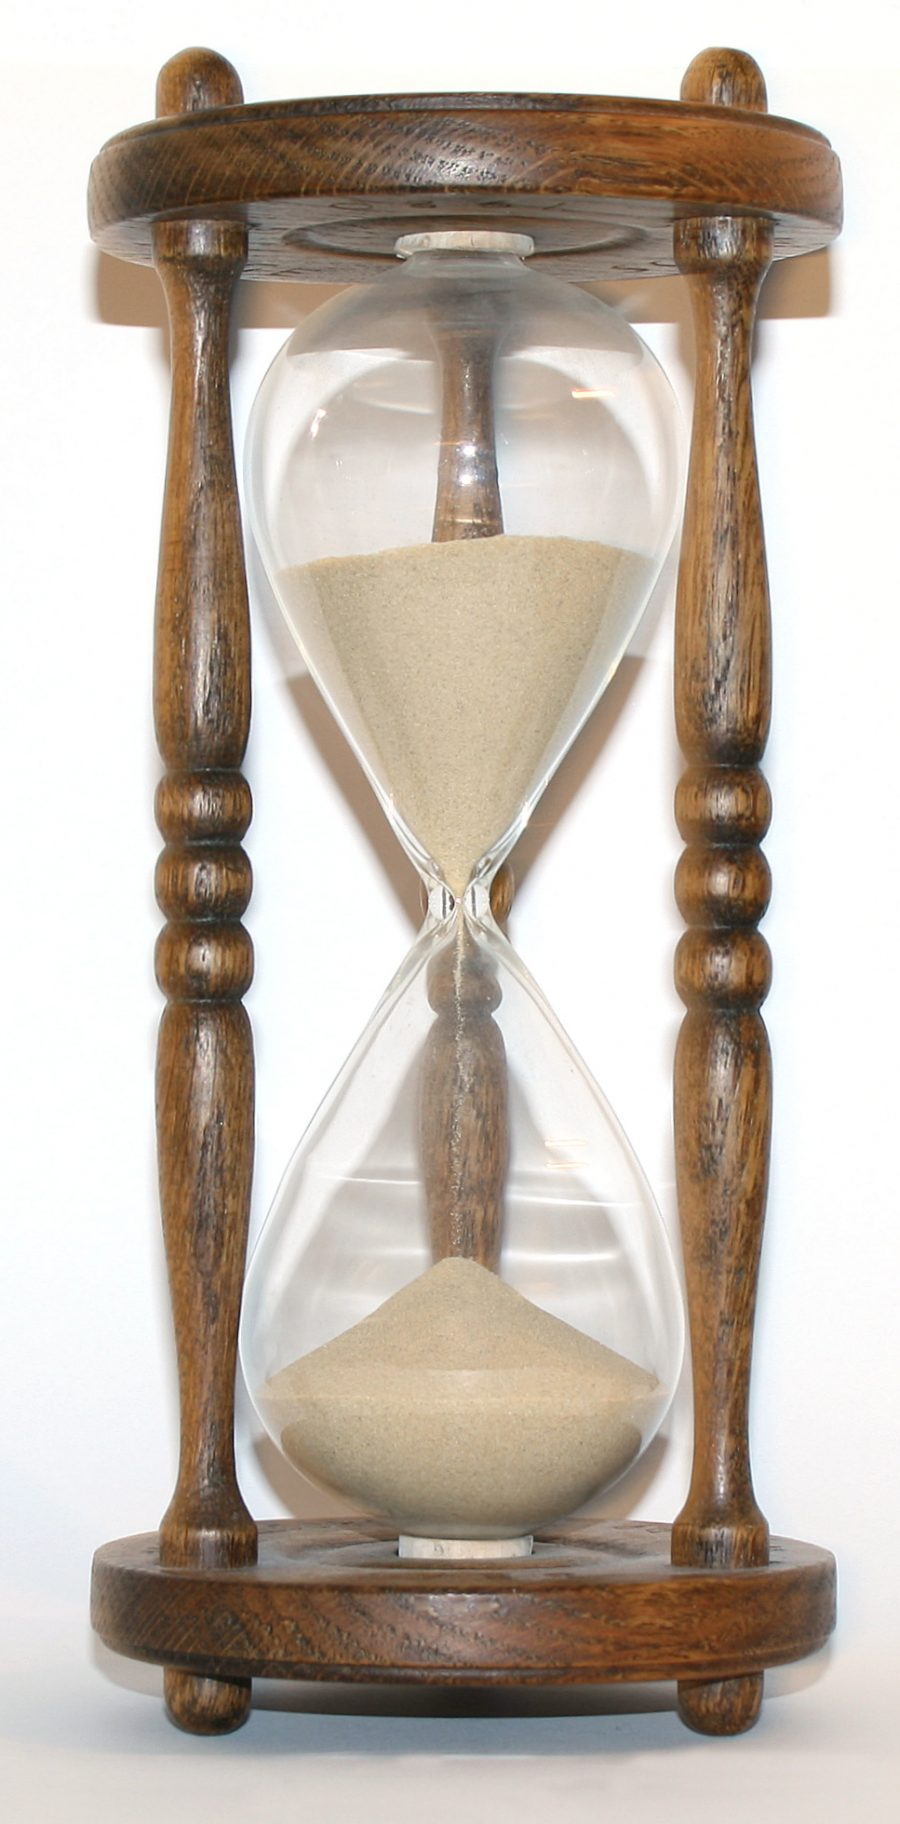 Hourglass Photo — Wooden — Photo by S. Sepp — Wikipedia — Saved Wednesday 12-5-2018